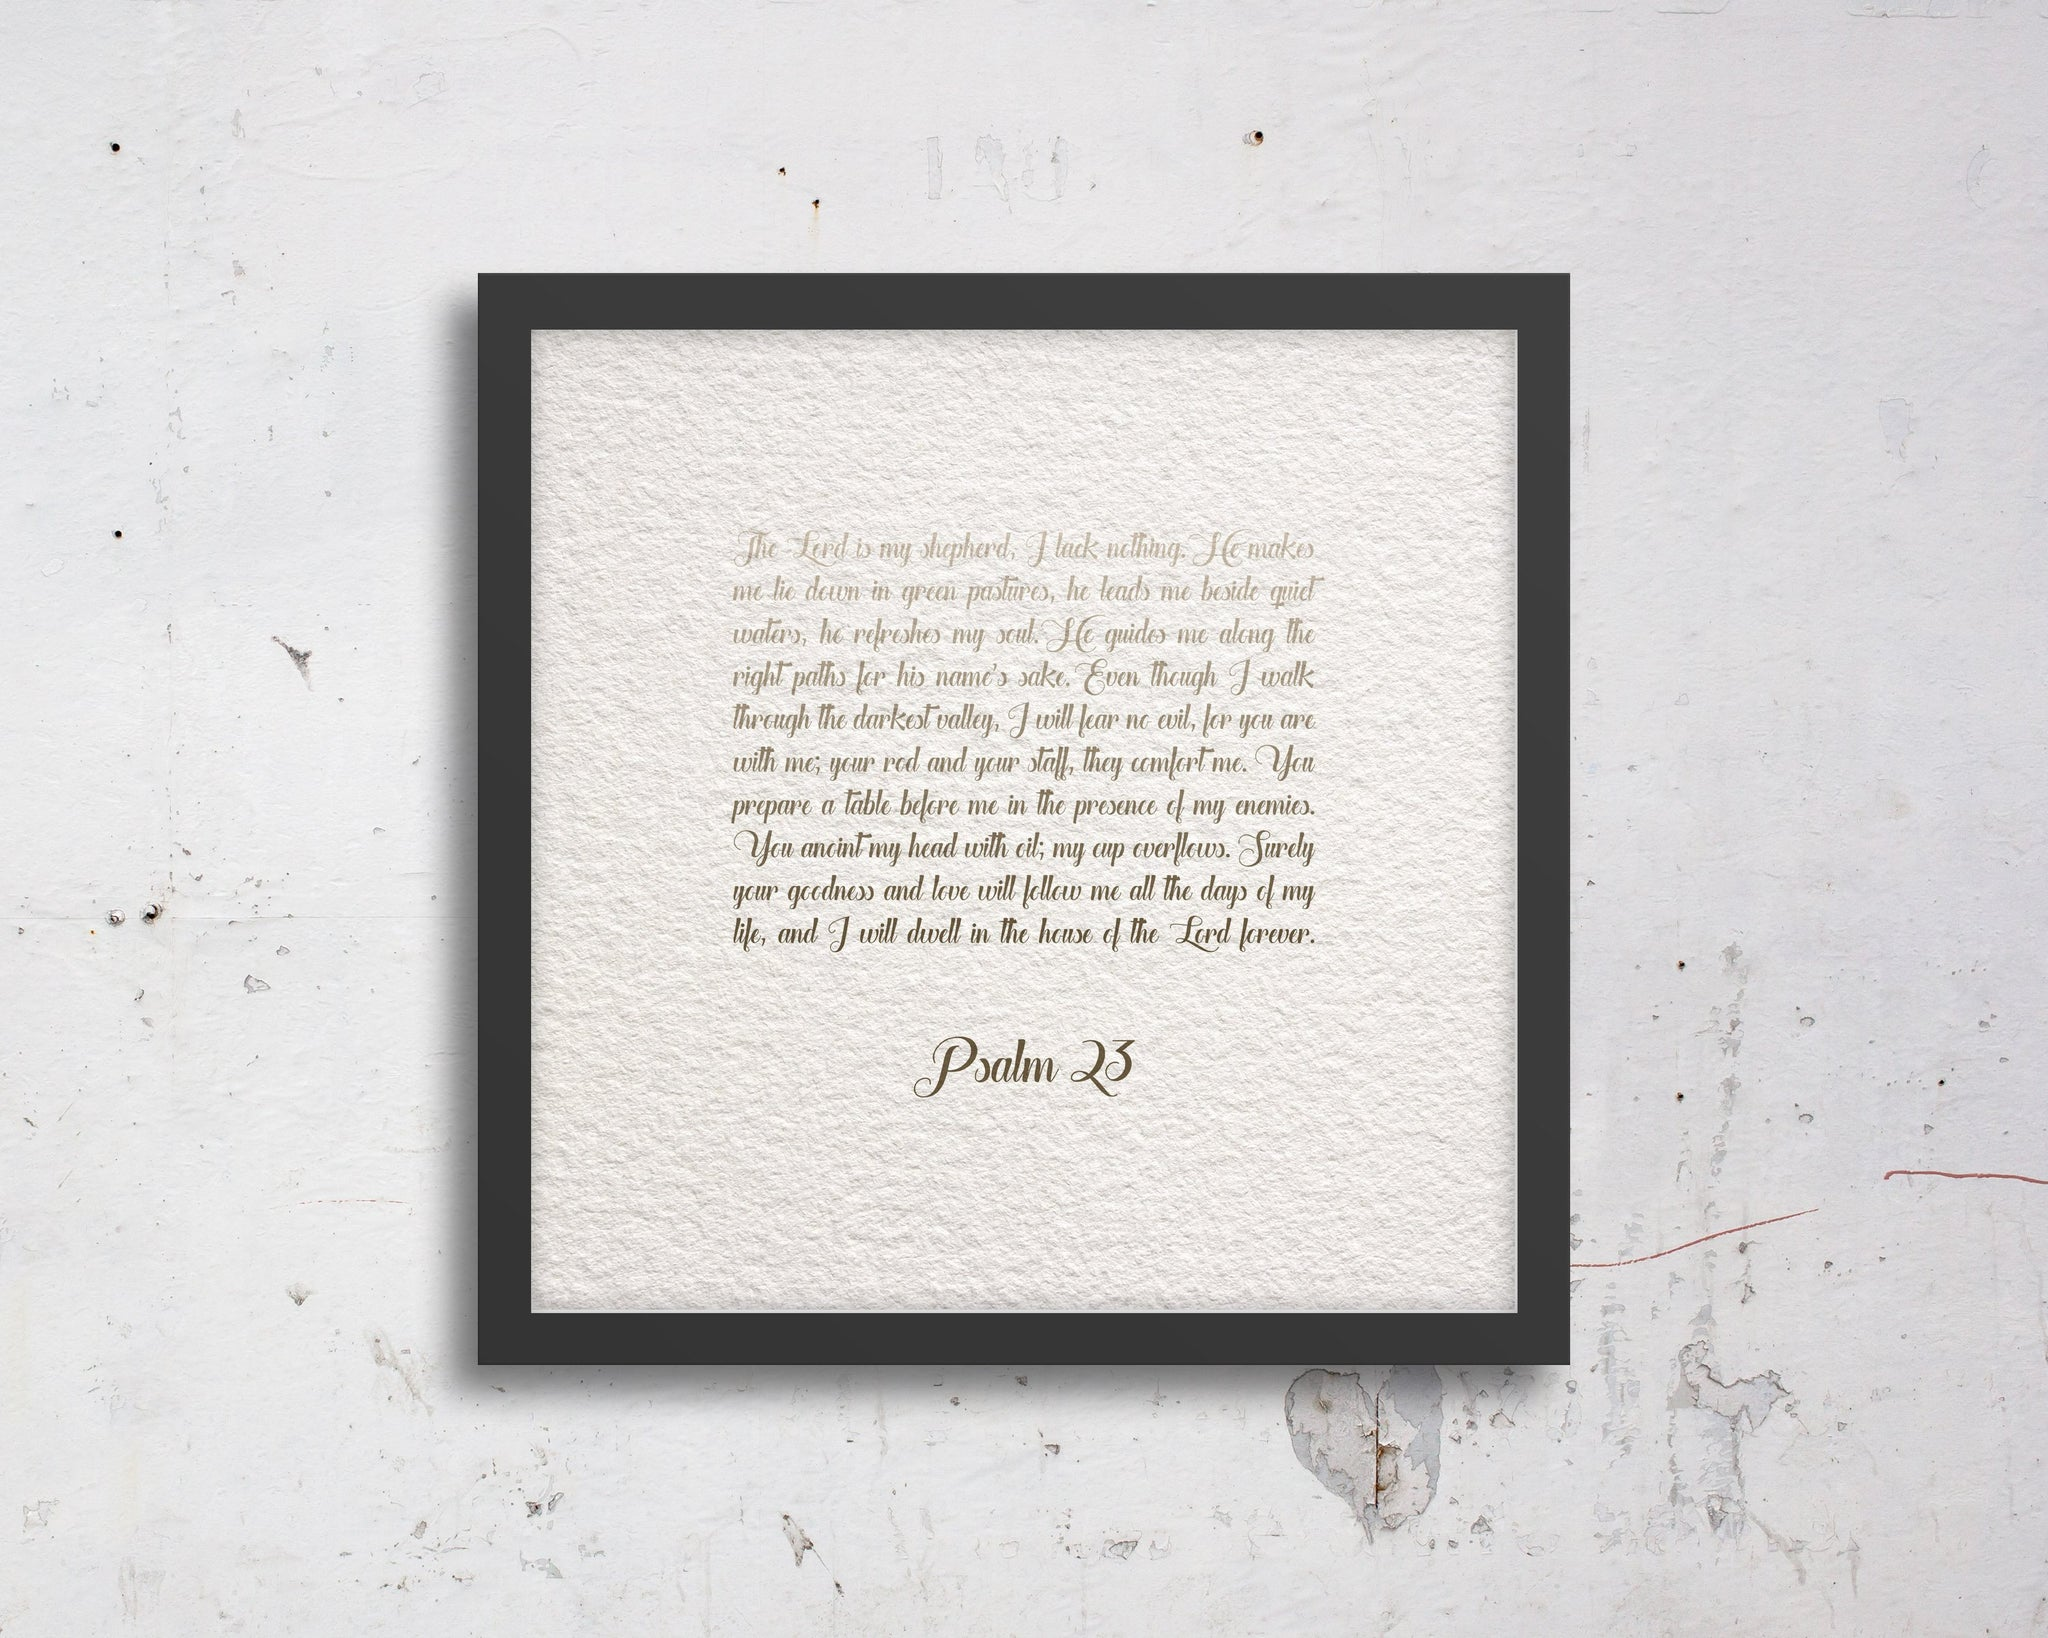 Psalm 23, Fine Art, custom, Bible verse, Scripture, prints, Scriptures on canvas, Framed scripture, wall decor, gift, gifts, Christmas, mom